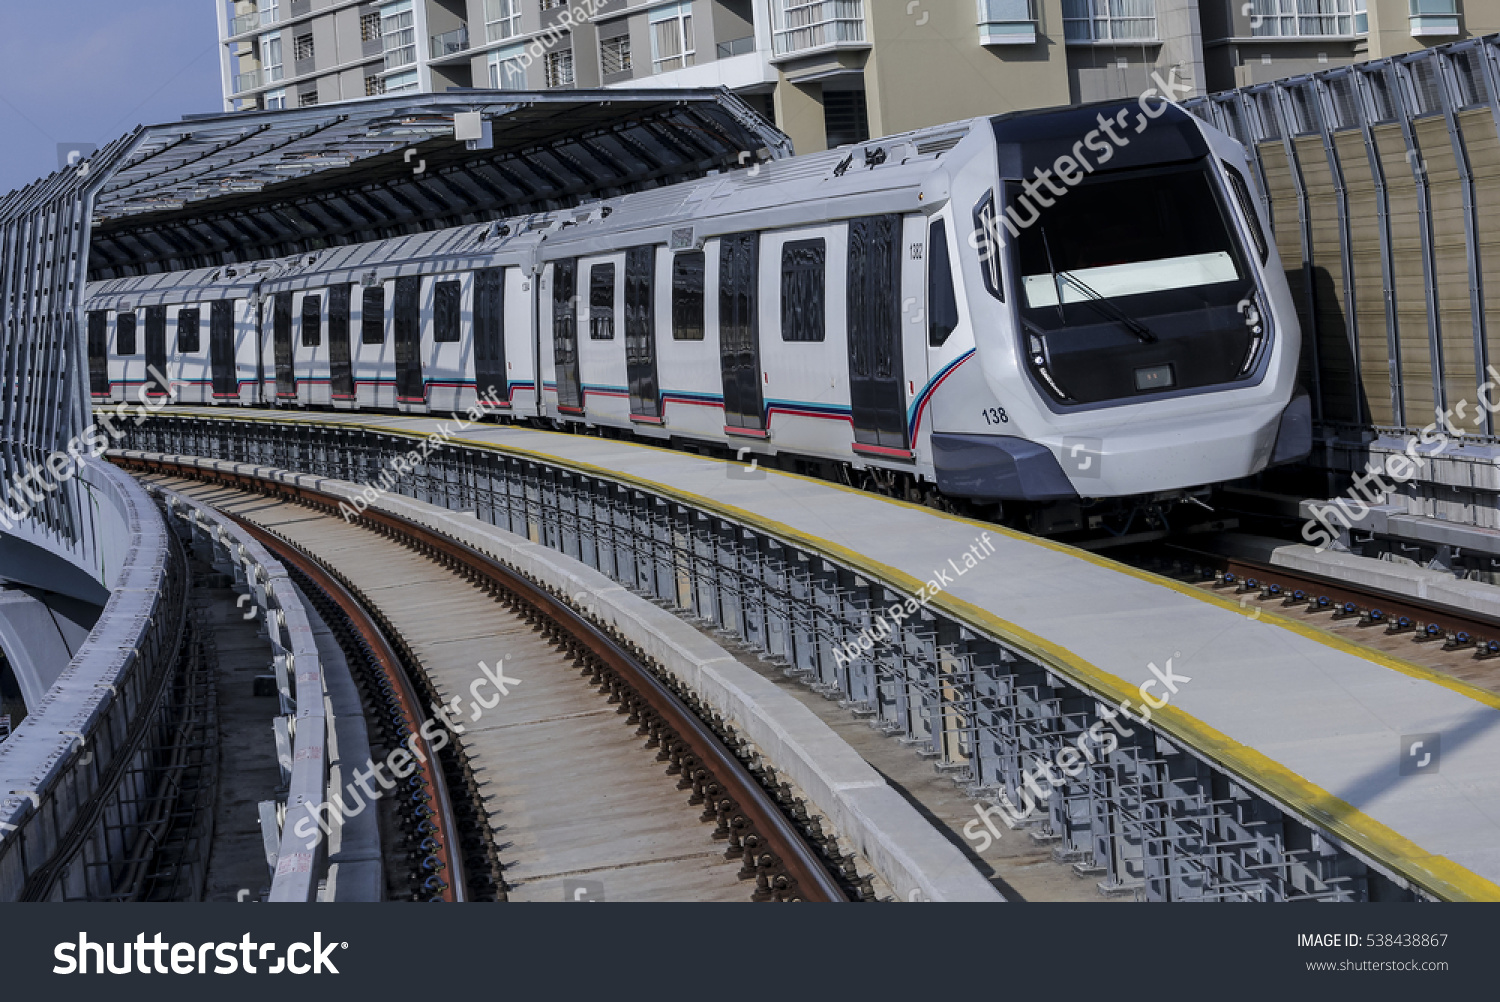 KUALA LUMPUR MALAYSIA DECEMBER 15 2016 Mass Rapid Transit MRT train MRT is new public transport for everyone in Klang Valley with launch of the first line from Sungai Buloh to Kajang SBK